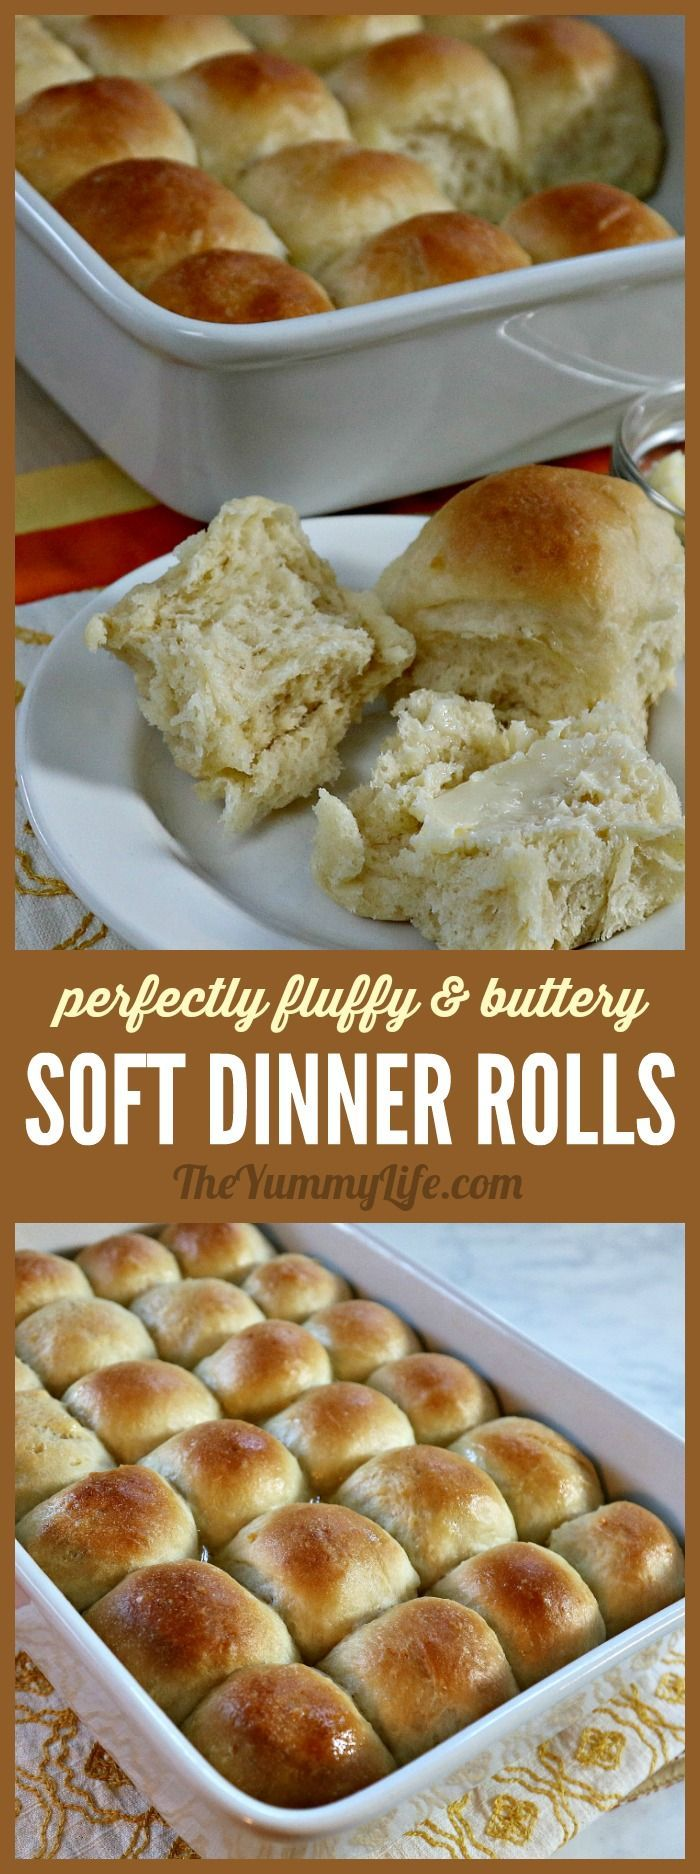 These soft, fluffy, buttery rolls are always a winner on the dinner table. Potato flakes give them a lighter texture. Can make ahead, let rise in fridge.